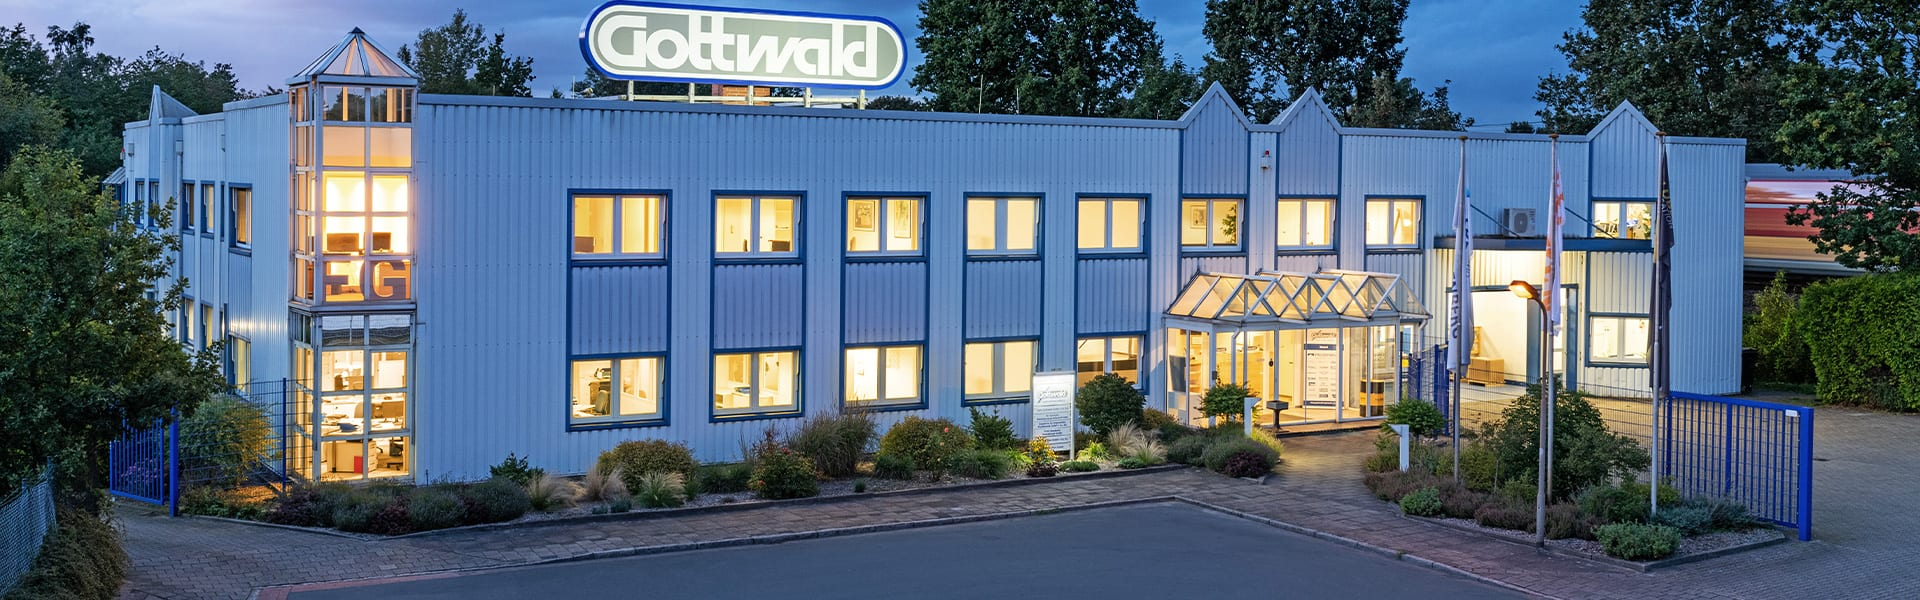 Gottwald group